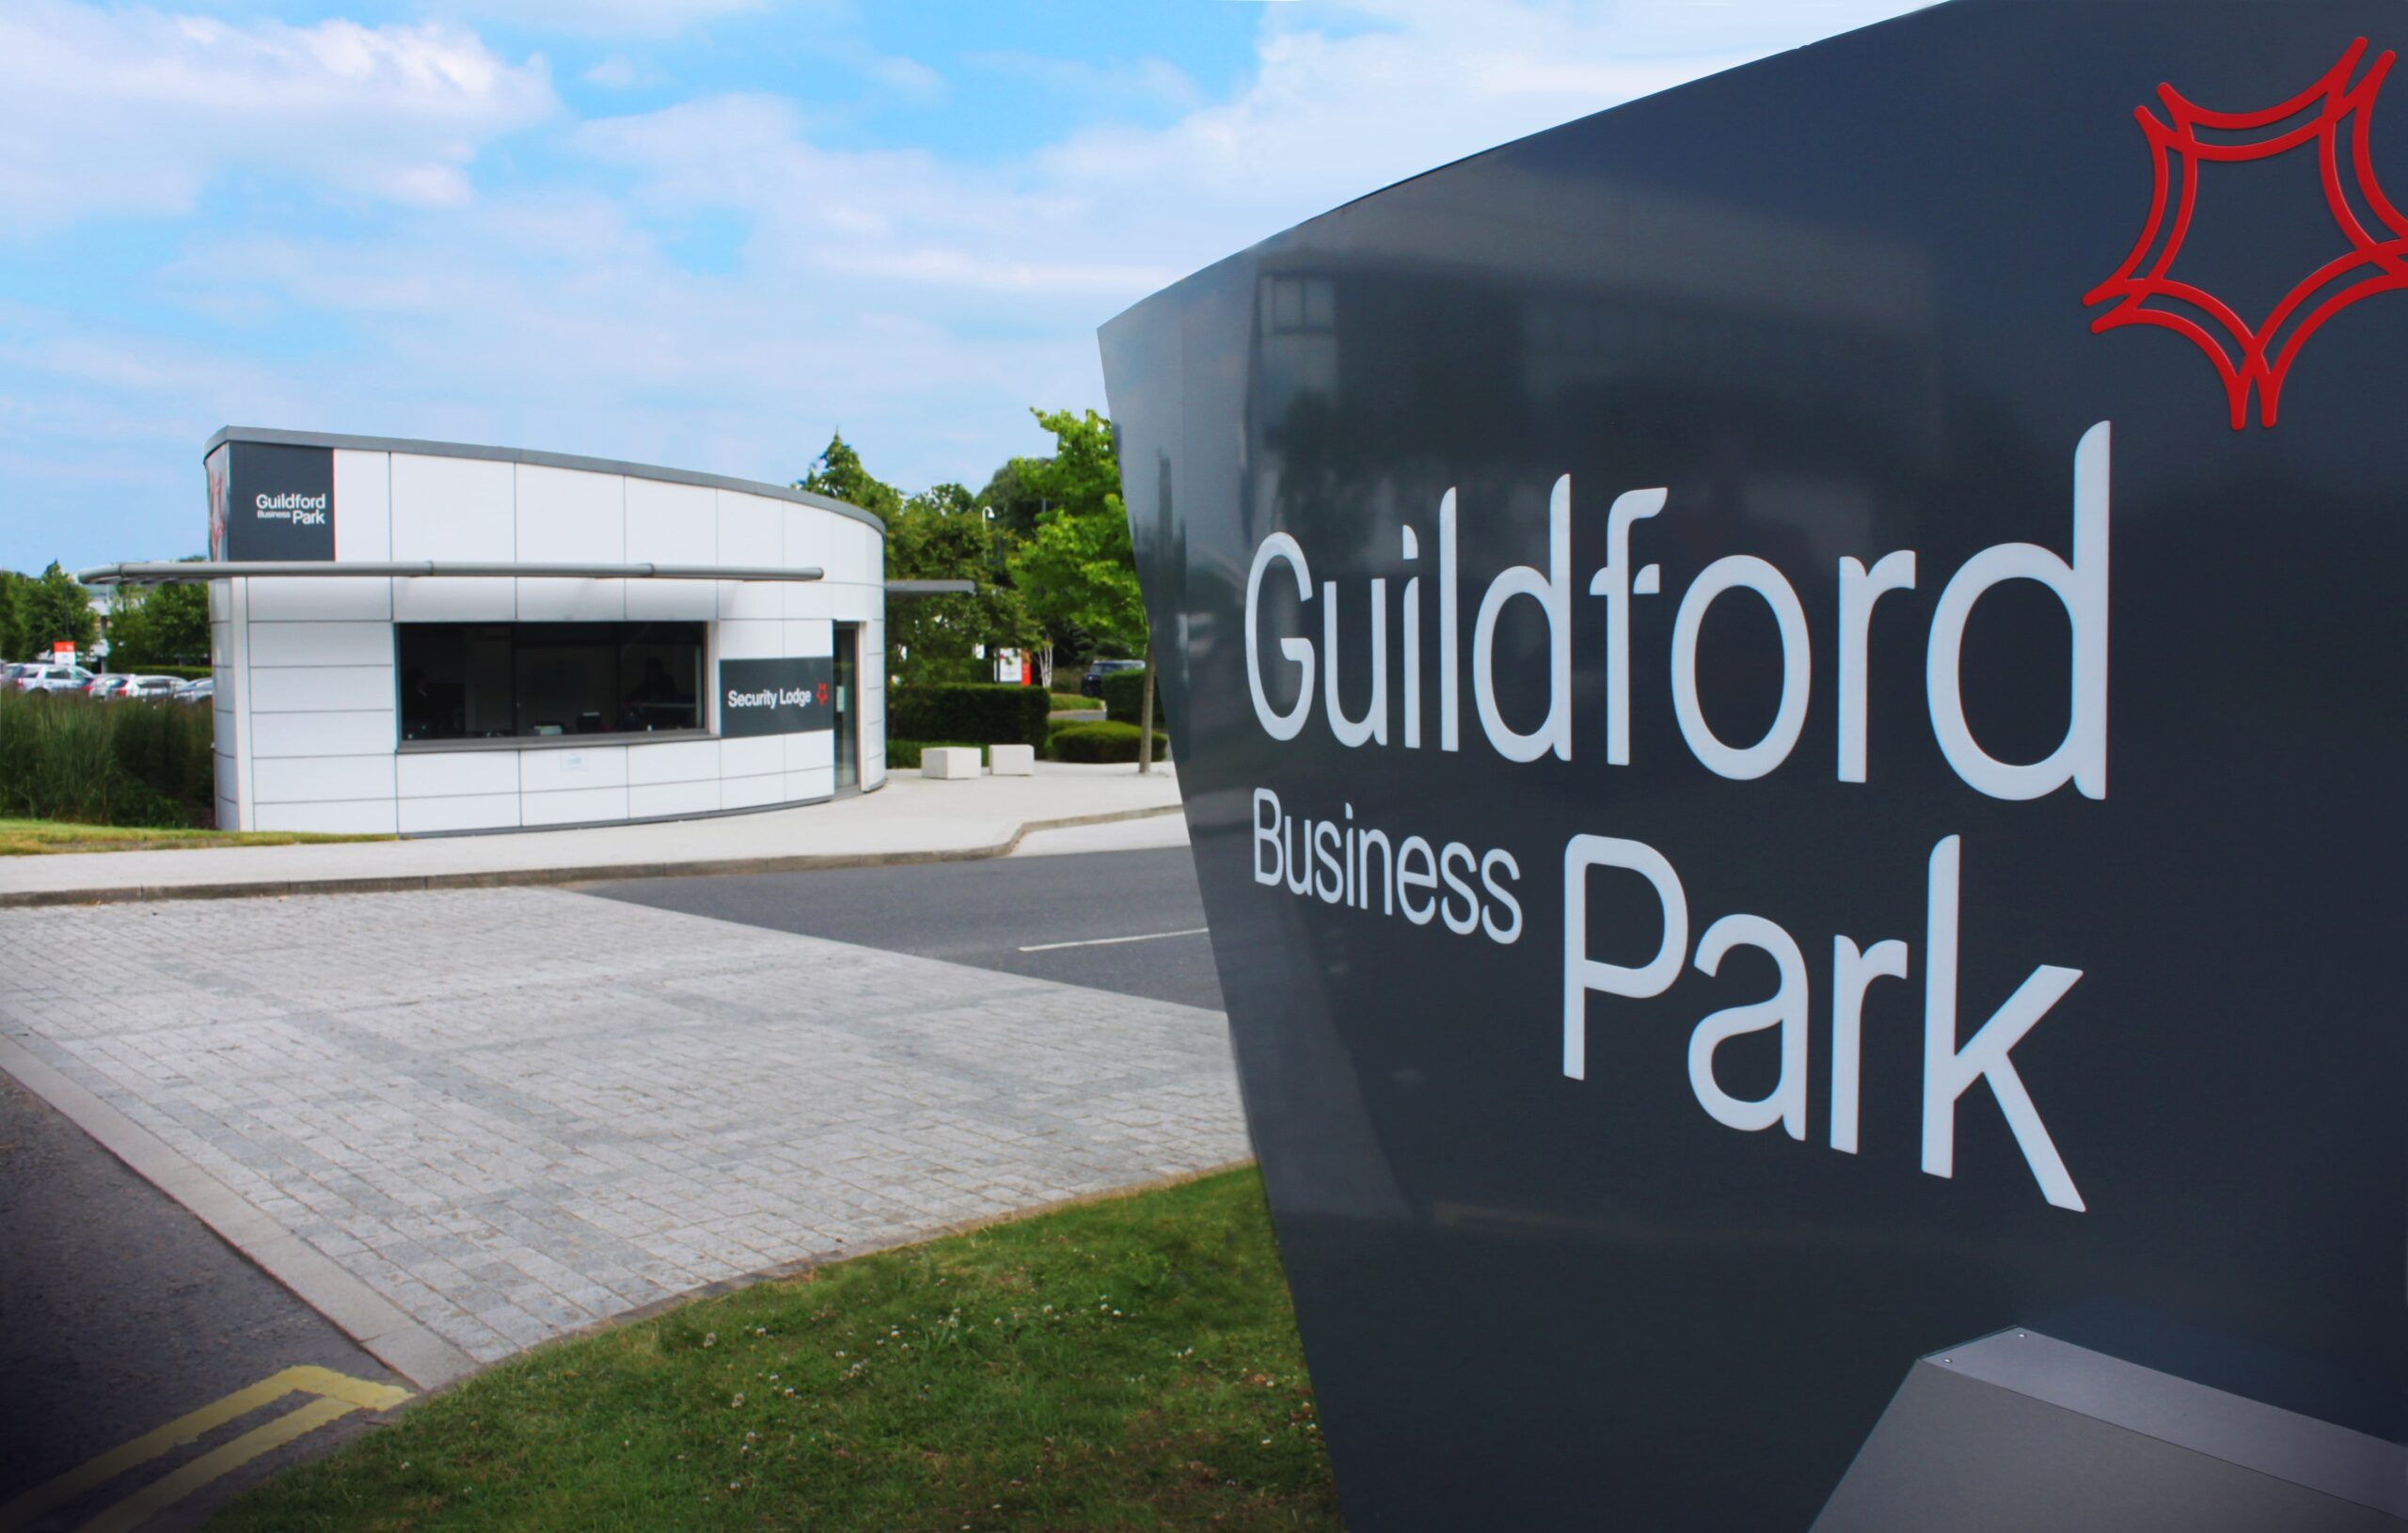 Guildford-Business-Park-1-min